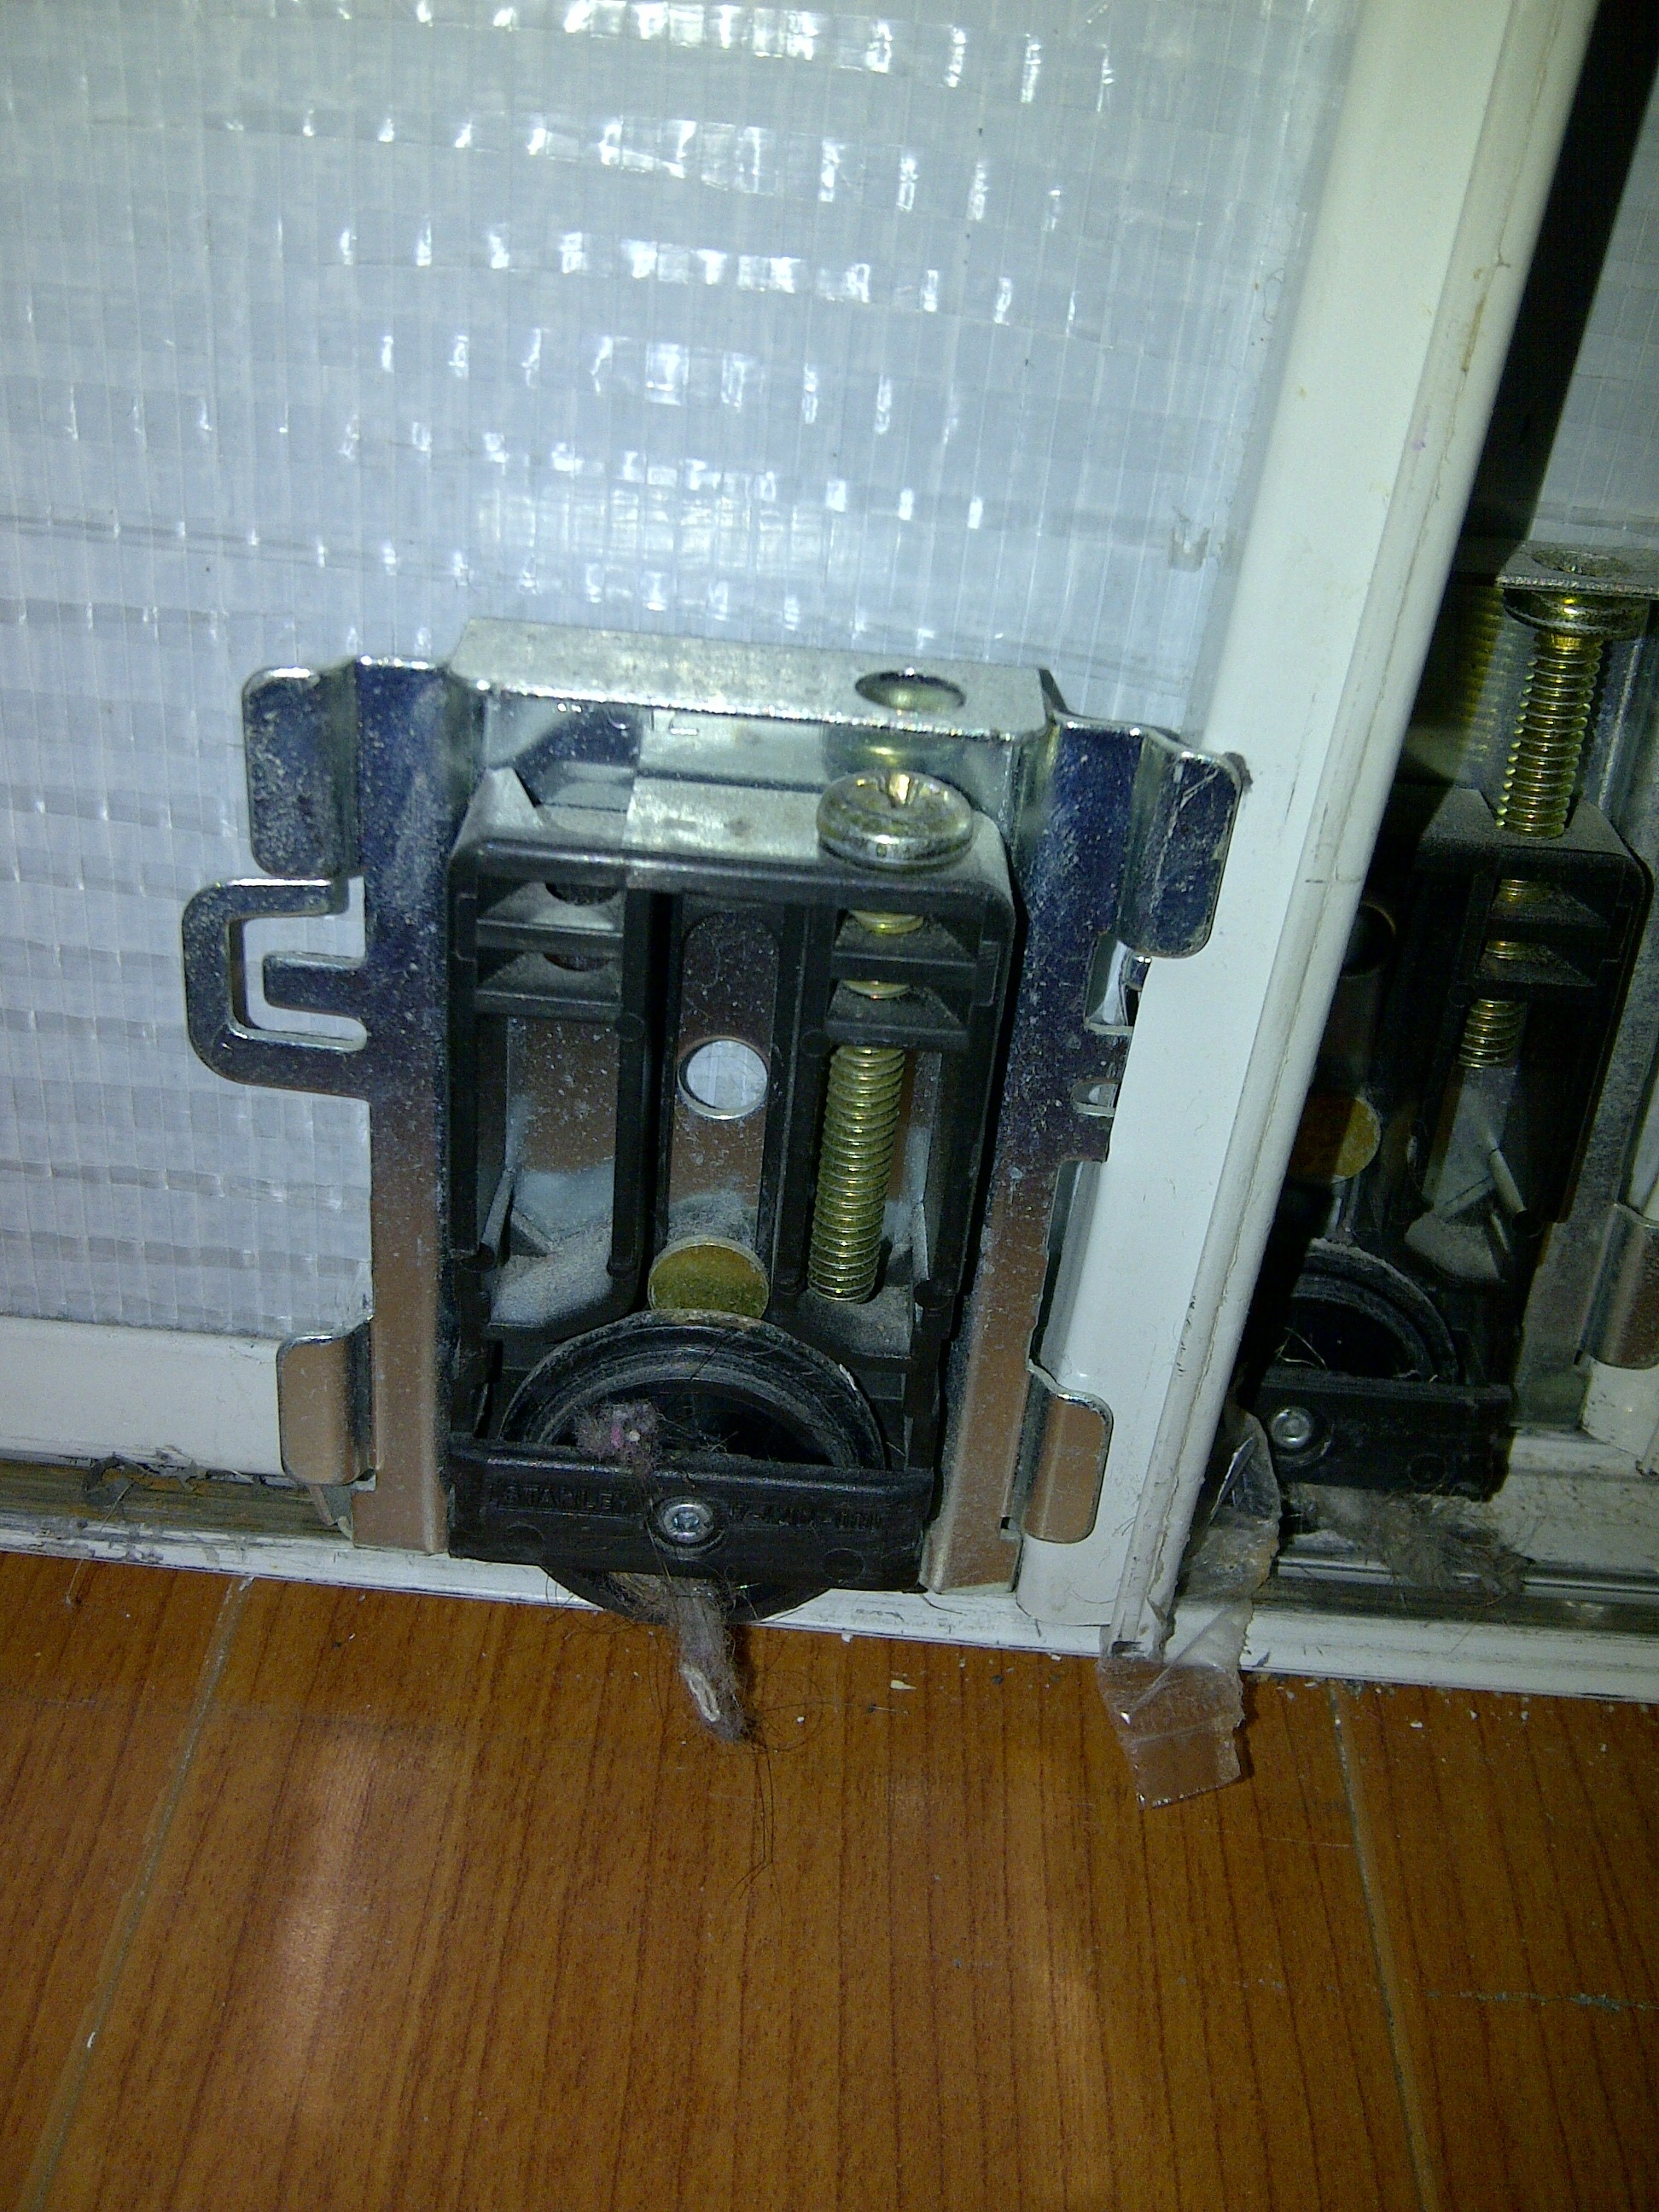 Sliding Mirrored Closet Doors Wheelsmirrors repair replace and install in vancouver bc